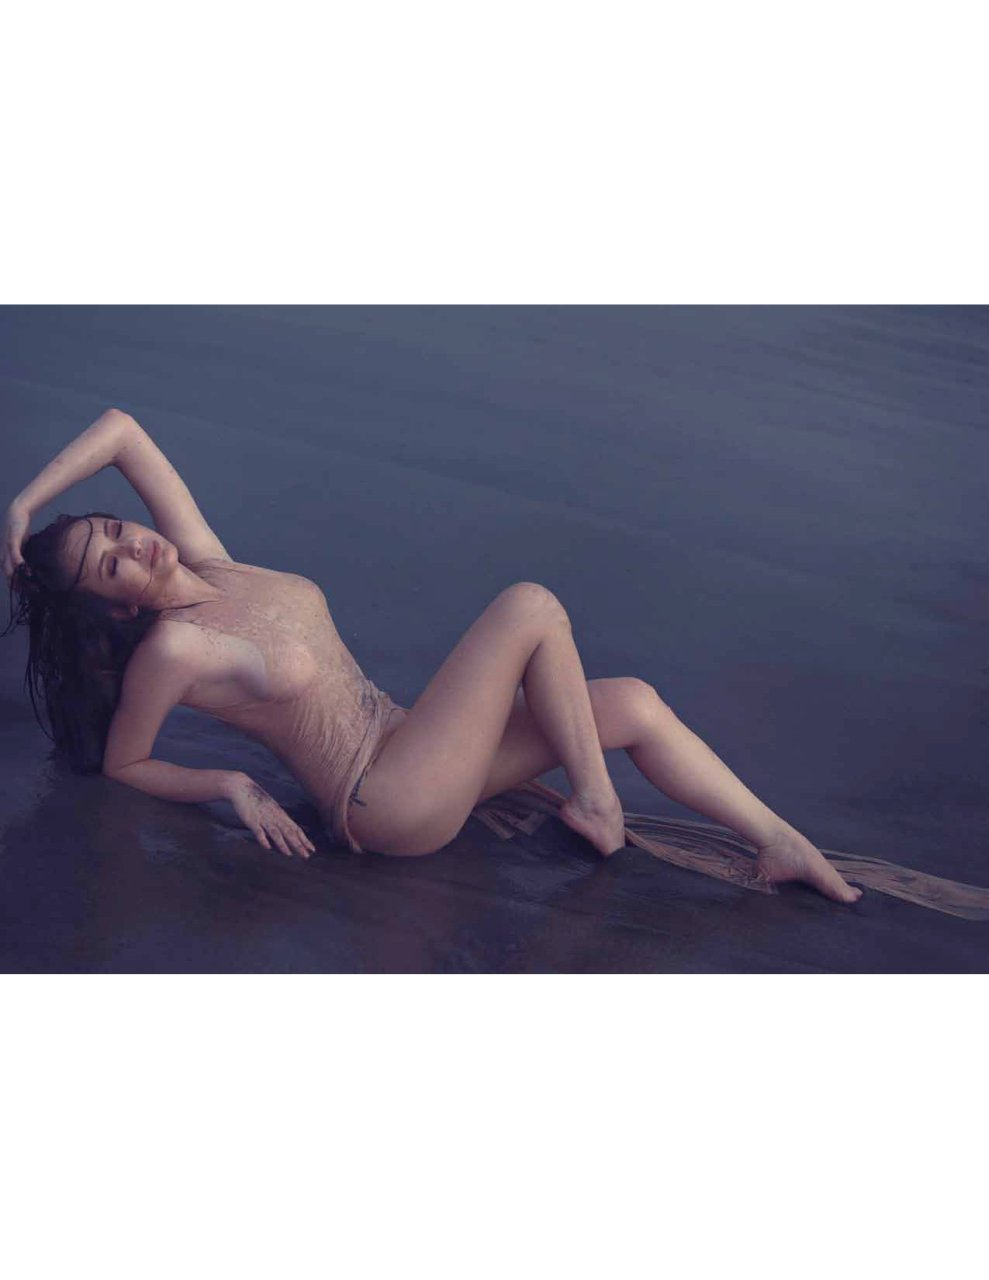 Absolutely ellen adarna fhm remarkable idea